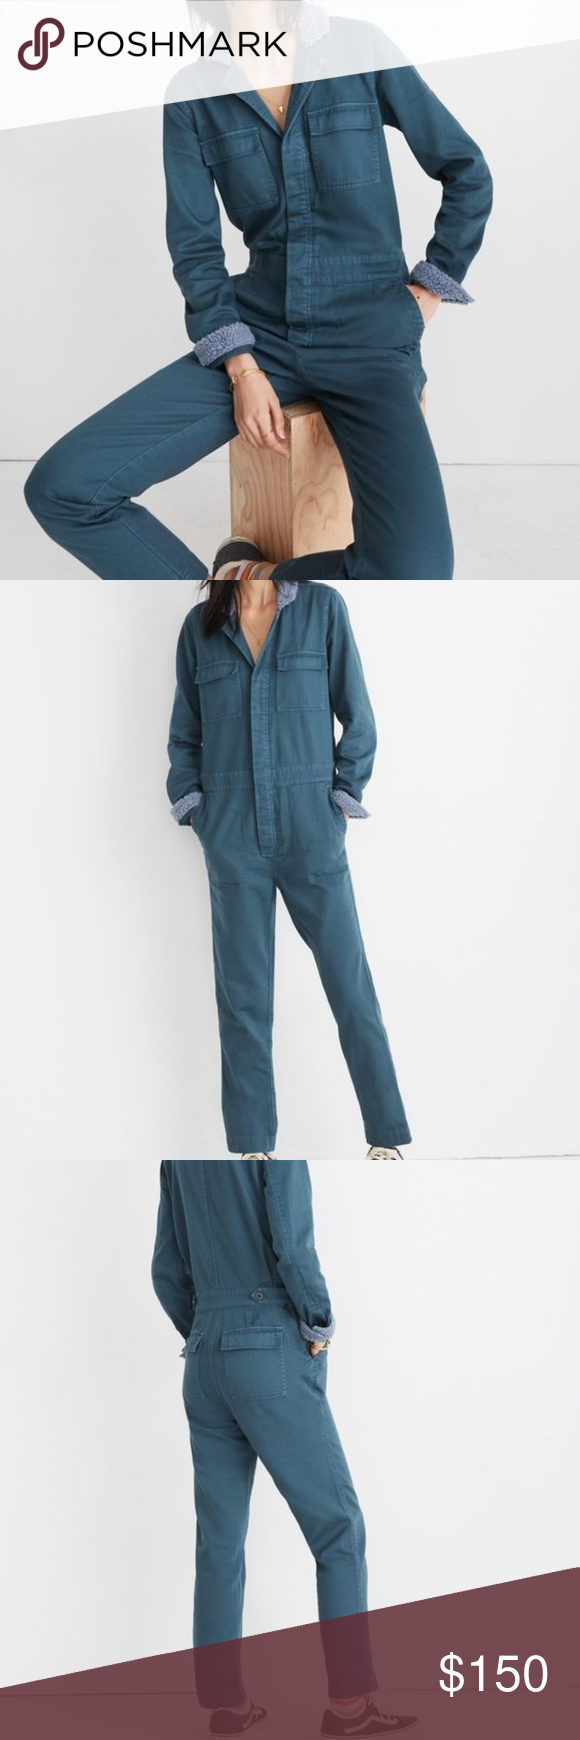 f31b87dbb070 Madewell Sherpa Coverall Jumpsuit Available tonight. Madewell s  best-selling jumpsuit gets a cozy update